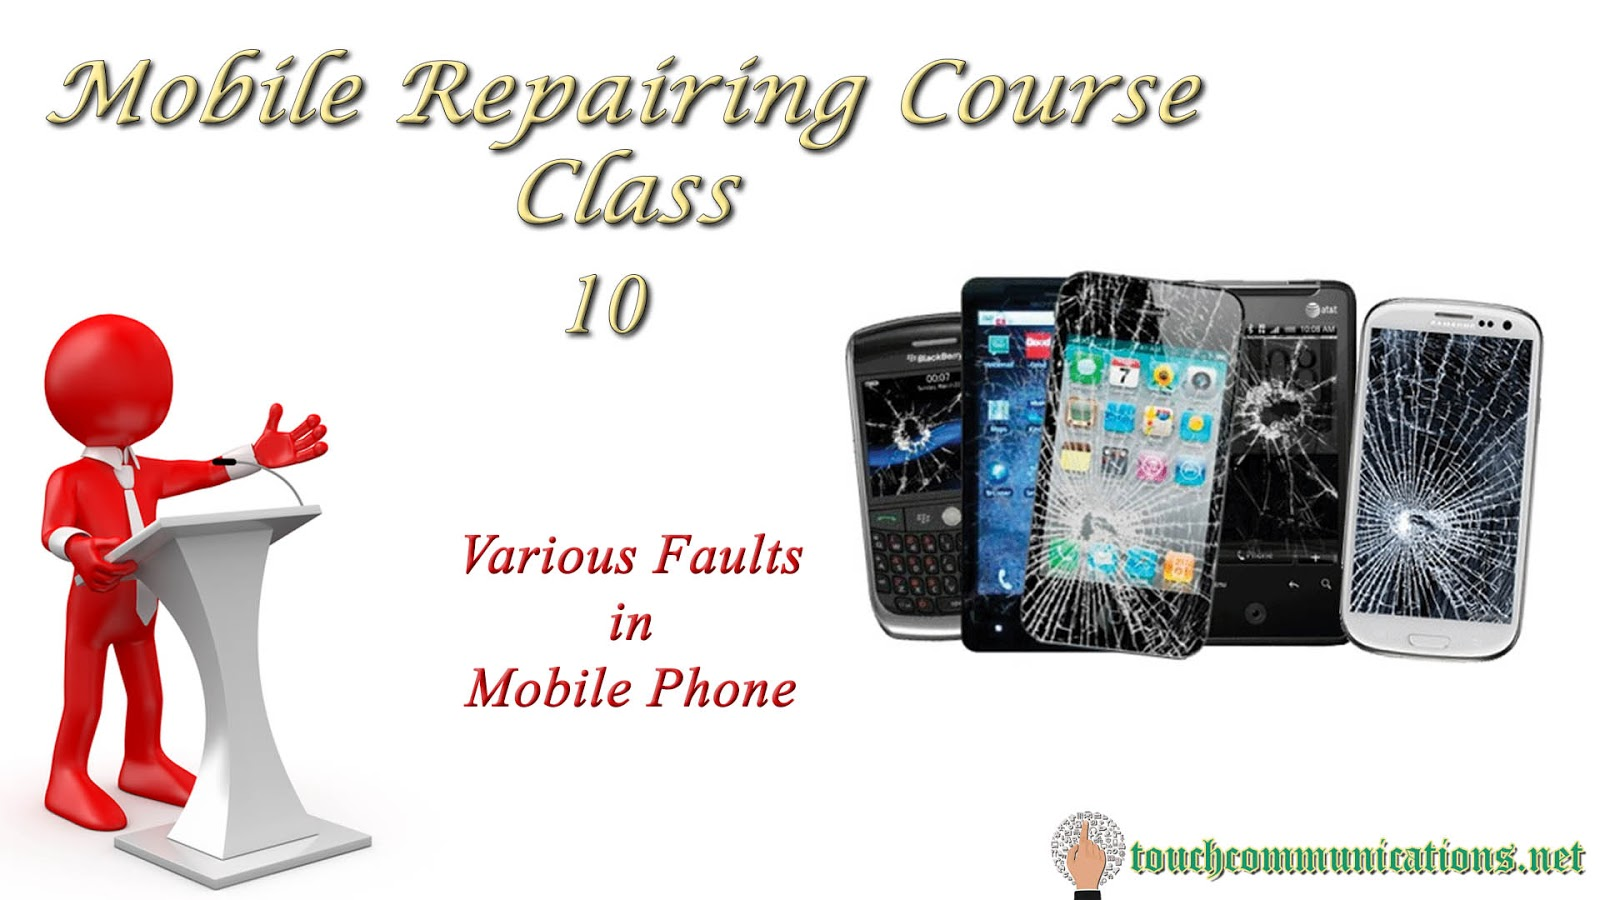 Mobile Repairing Course Online Free Class 10 Various Faults